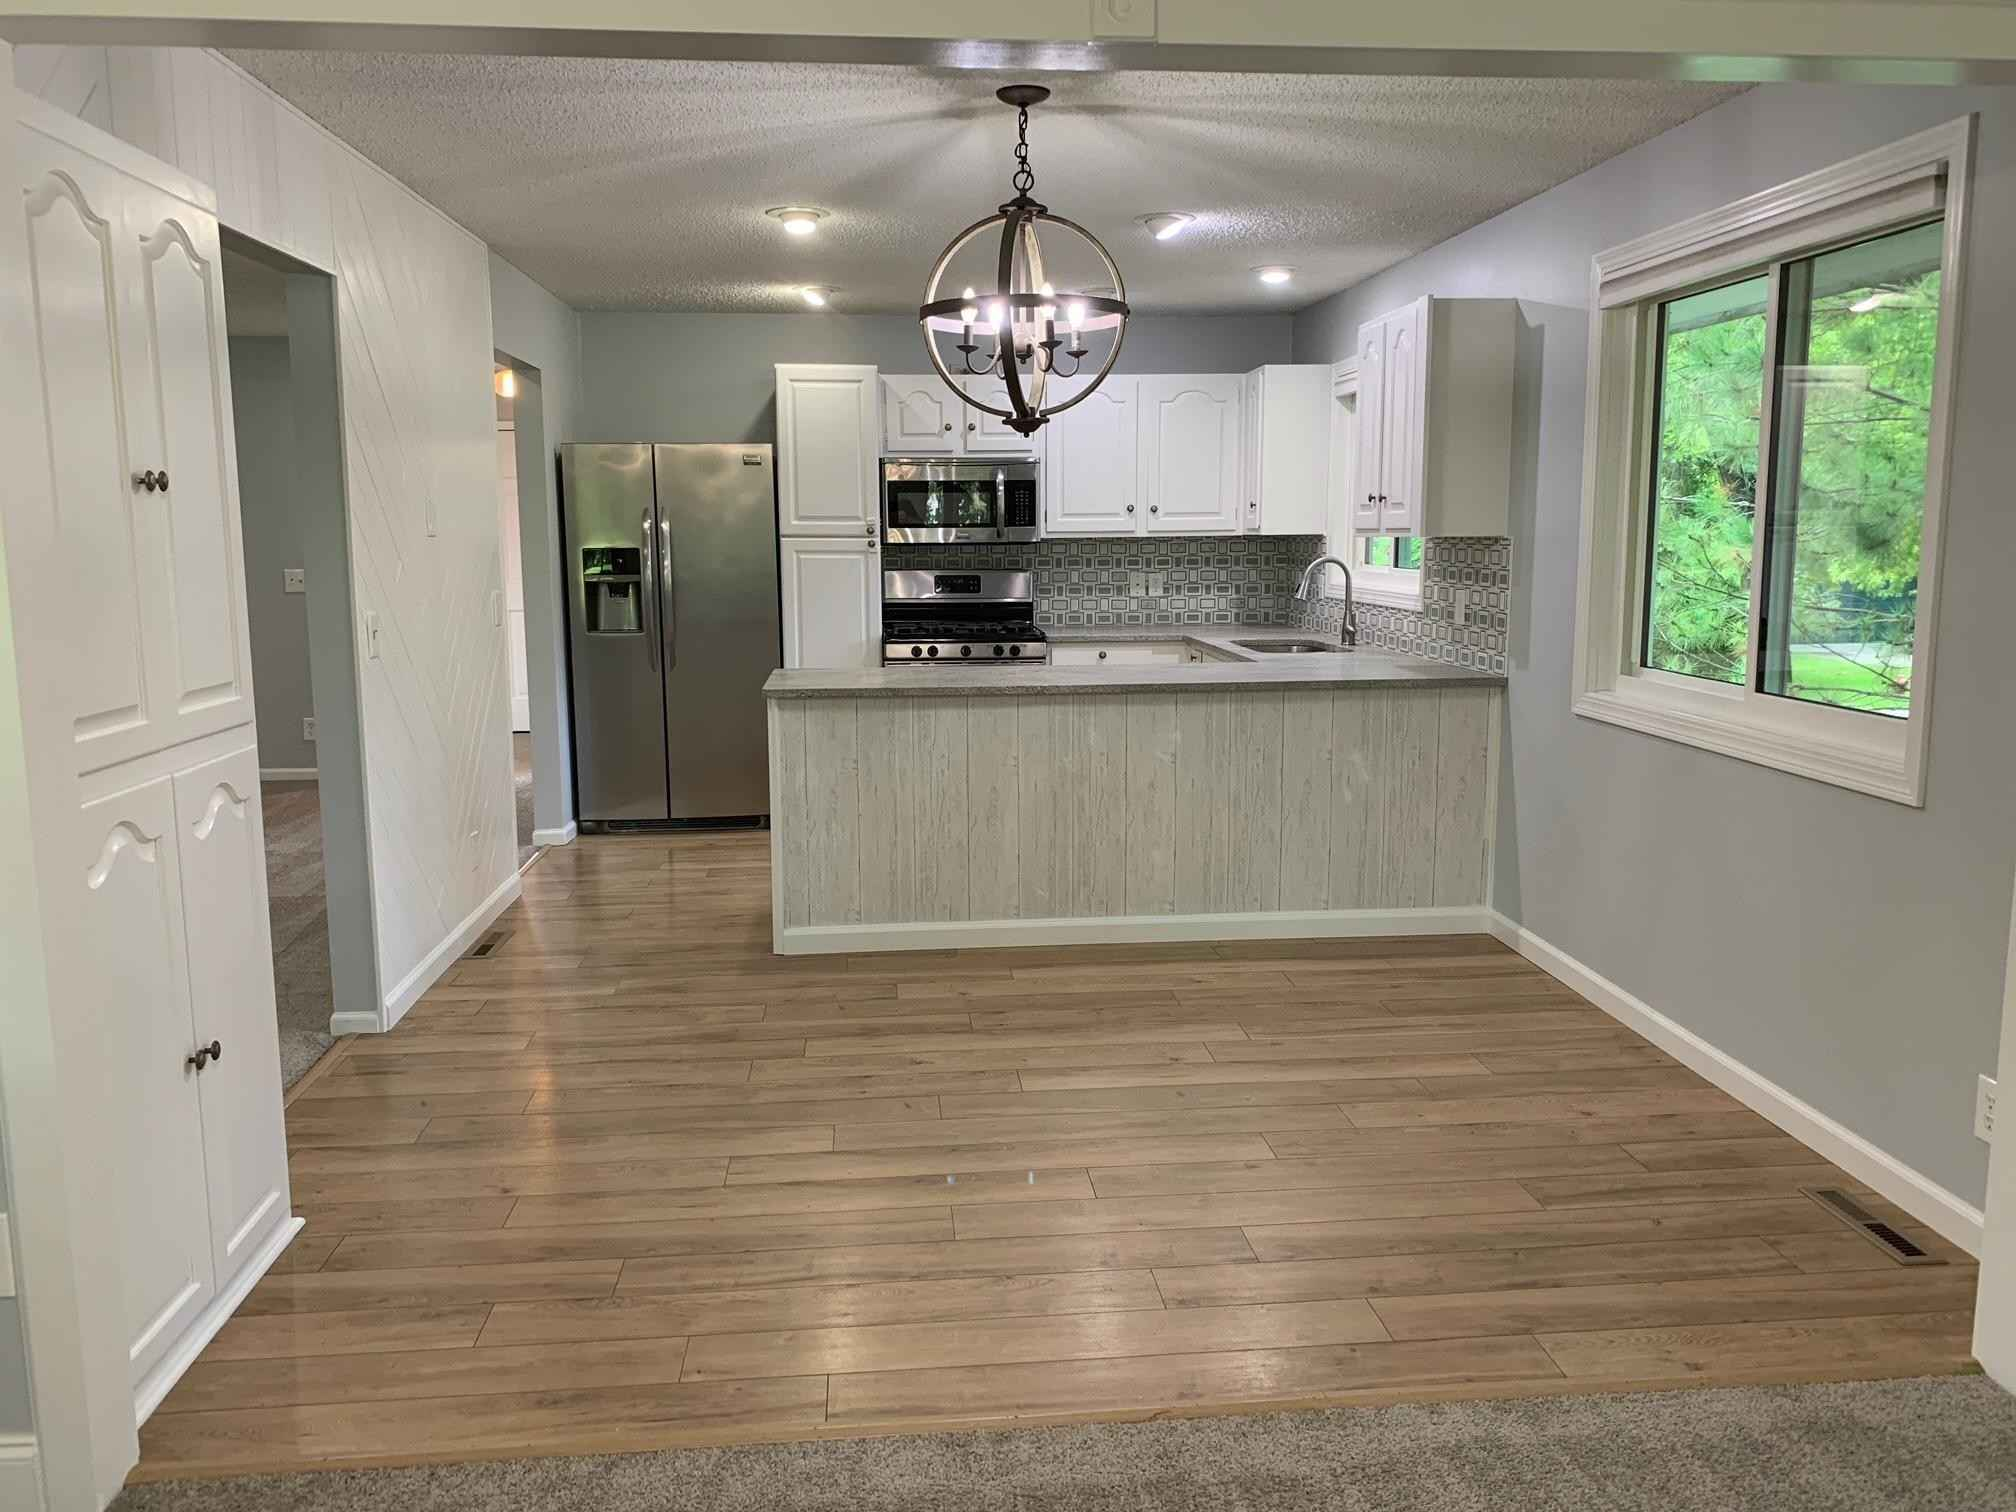 View 13 photos of this 4 bed, 2 bath, and 2,578 sqft. single_family home located at 112222 Hutchins Ct, Chaska, Minnesota 55318 is Pending for $350,000.